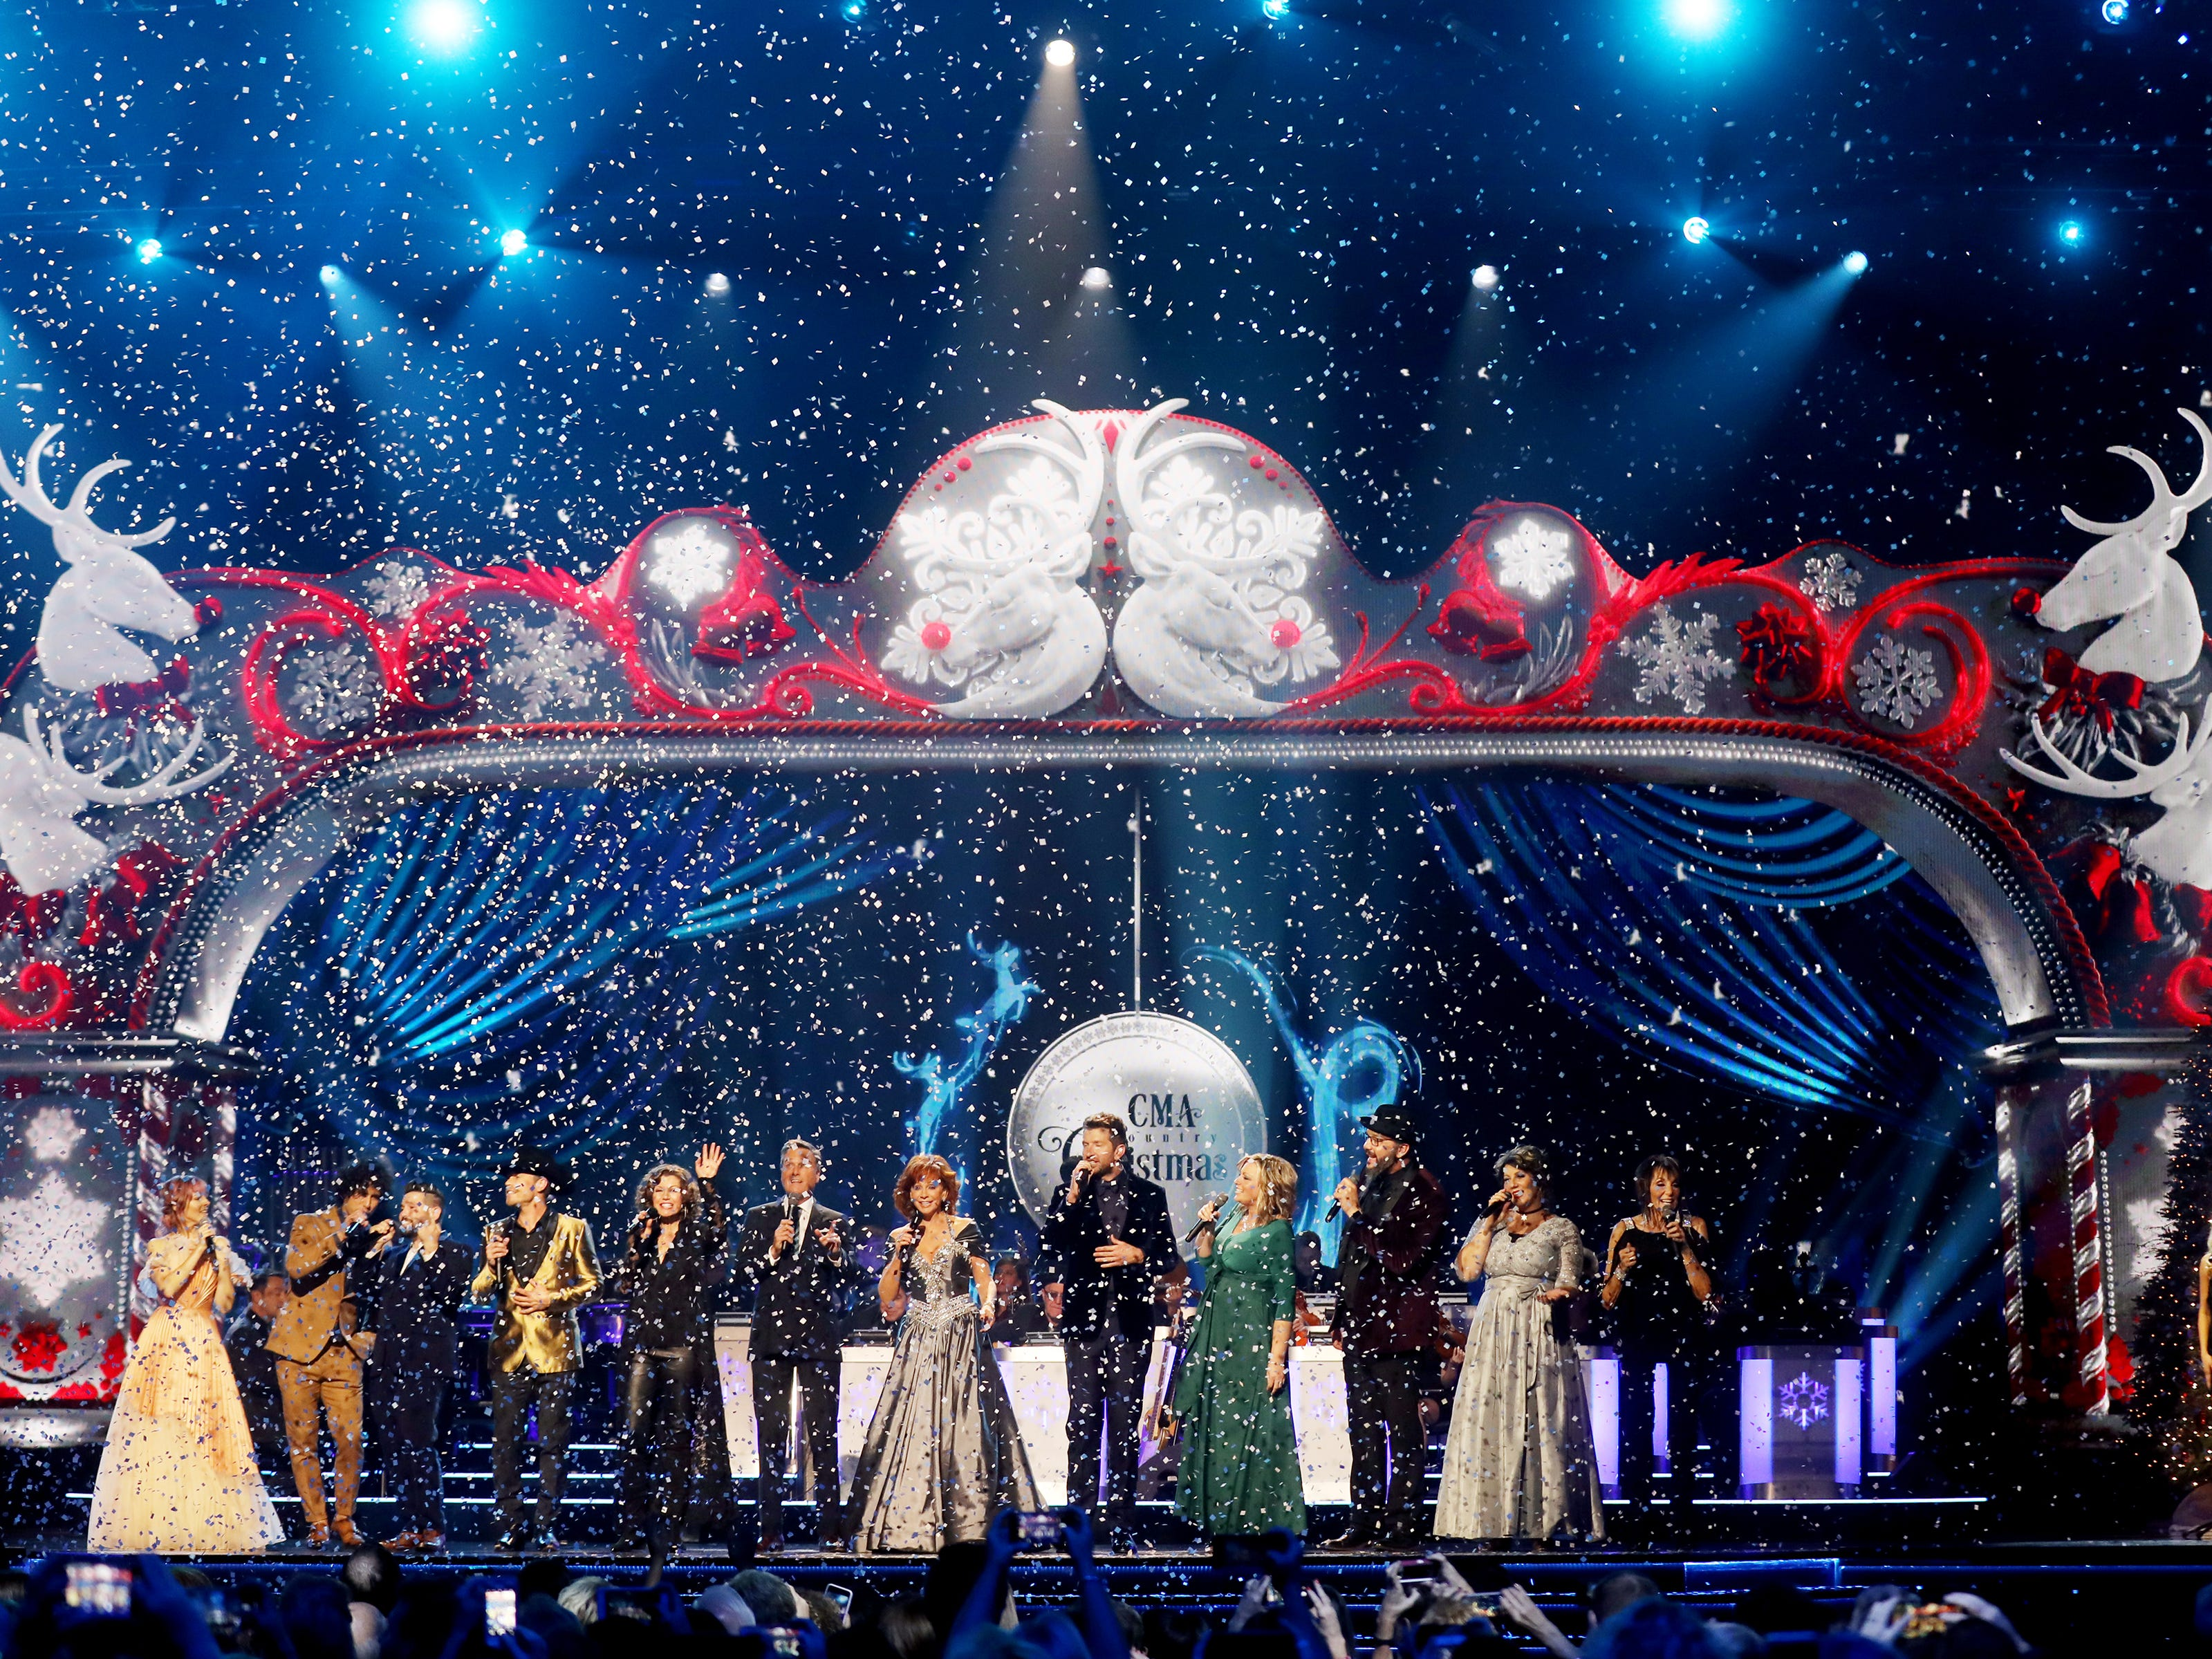 Reba McEntire is joined on stage by many of the performers for a final song during the filming of the 2018 CMA Country Christmas Thursday September 27, 2018 at Belmont's Curb Event Center.